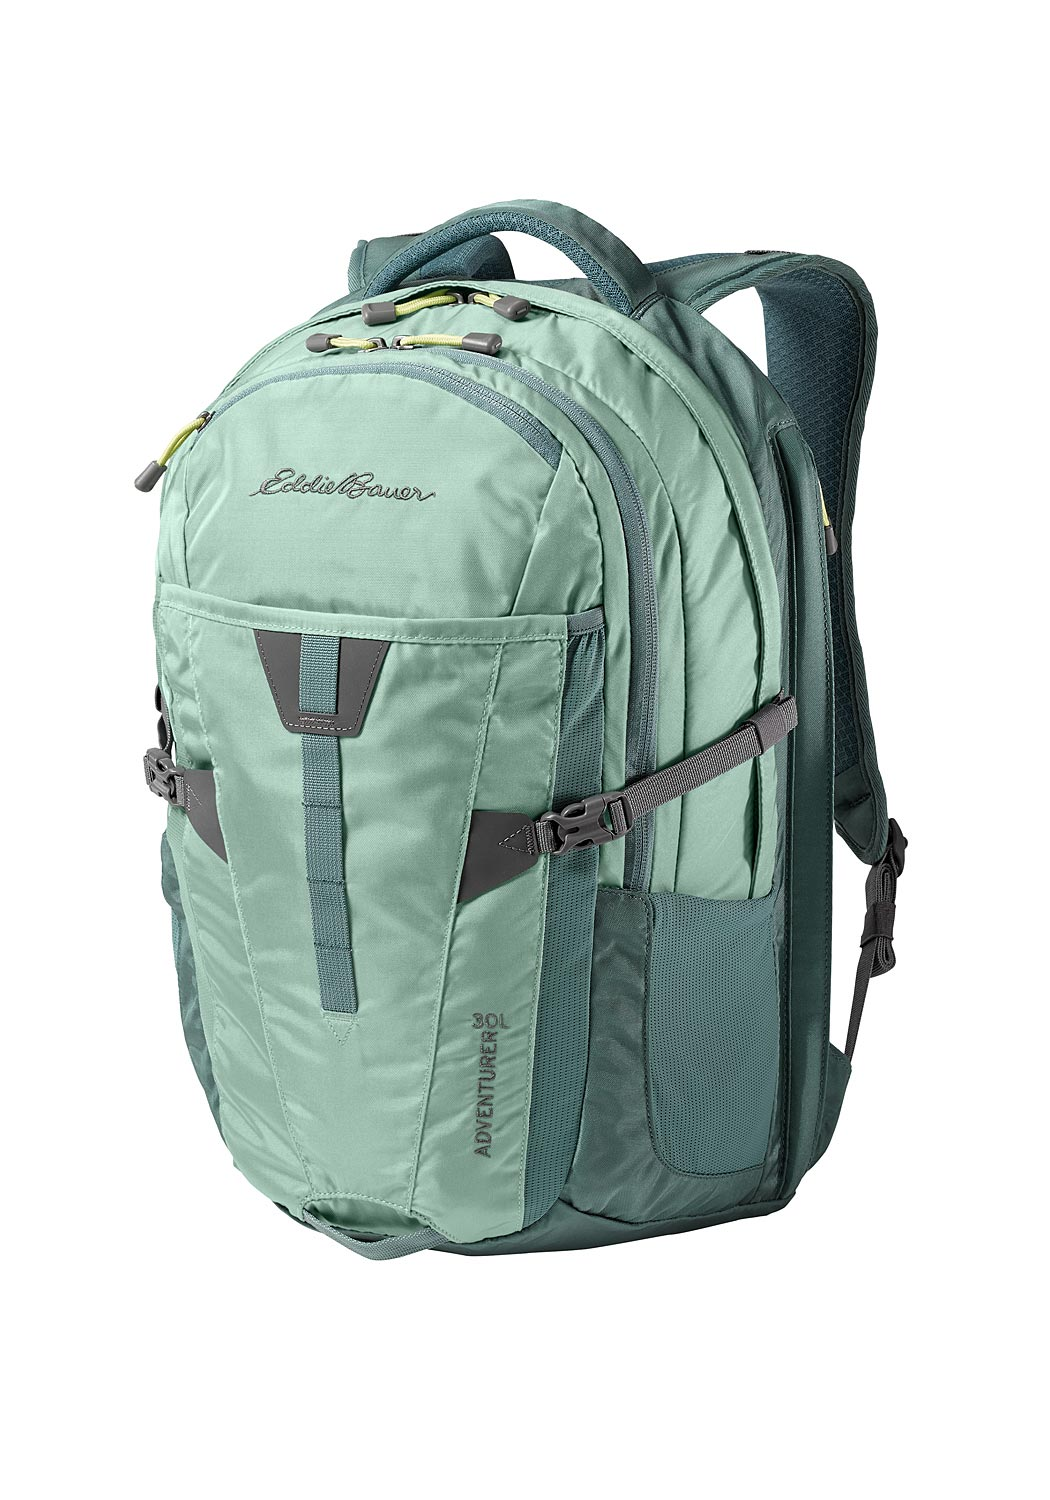 Adventurer Damenrucksack 30 L